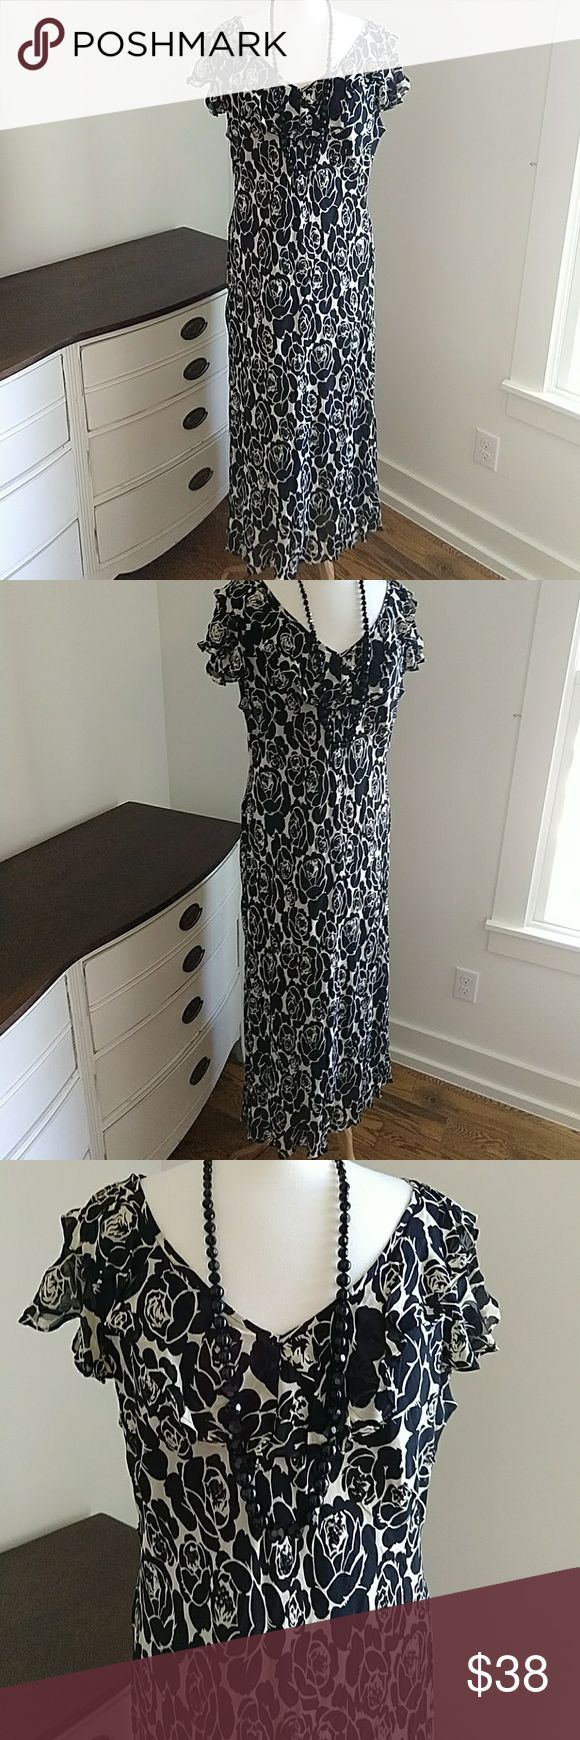 Black & Cream long dress by Paradise Plus NY Long and flattering. Chest flat 24 easily stretched to 26 Length between 53 and 54 inches paradise plus NY Dresses